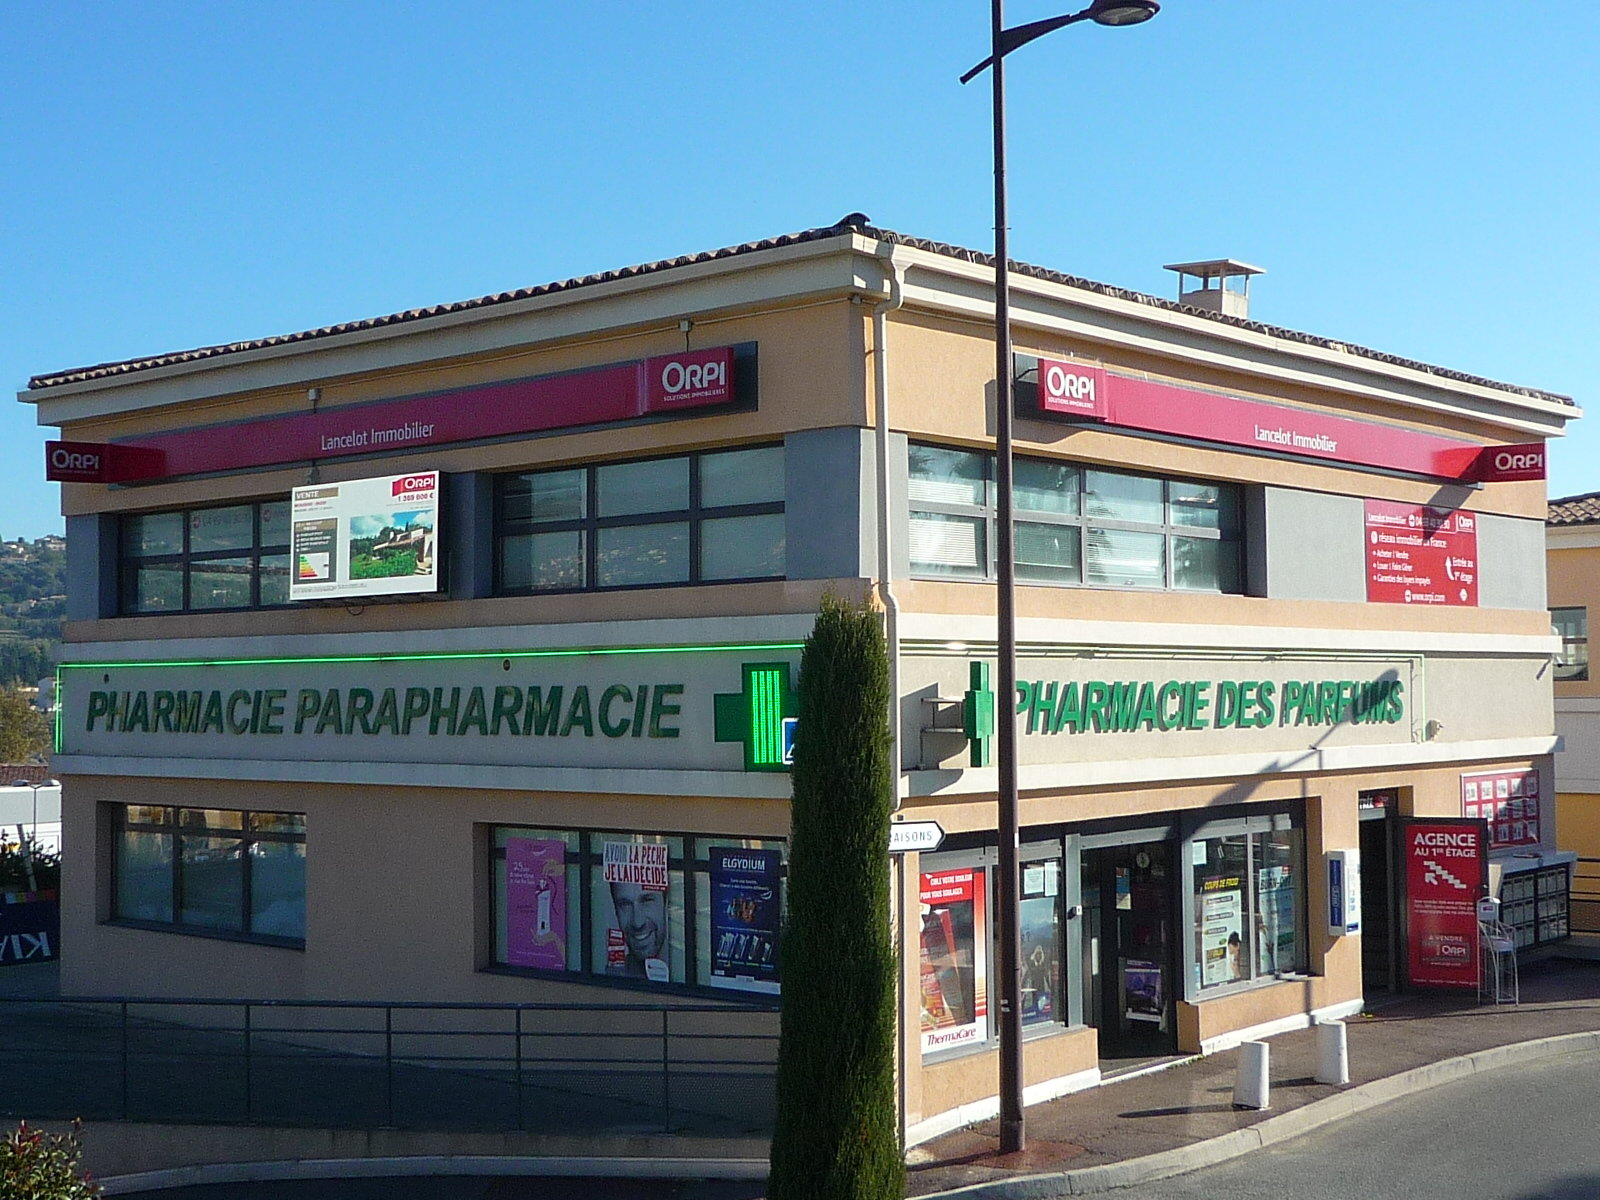 Agence immobili re grasse lancelot immobilier grasse for Acheter une maison sans agence immobiliere